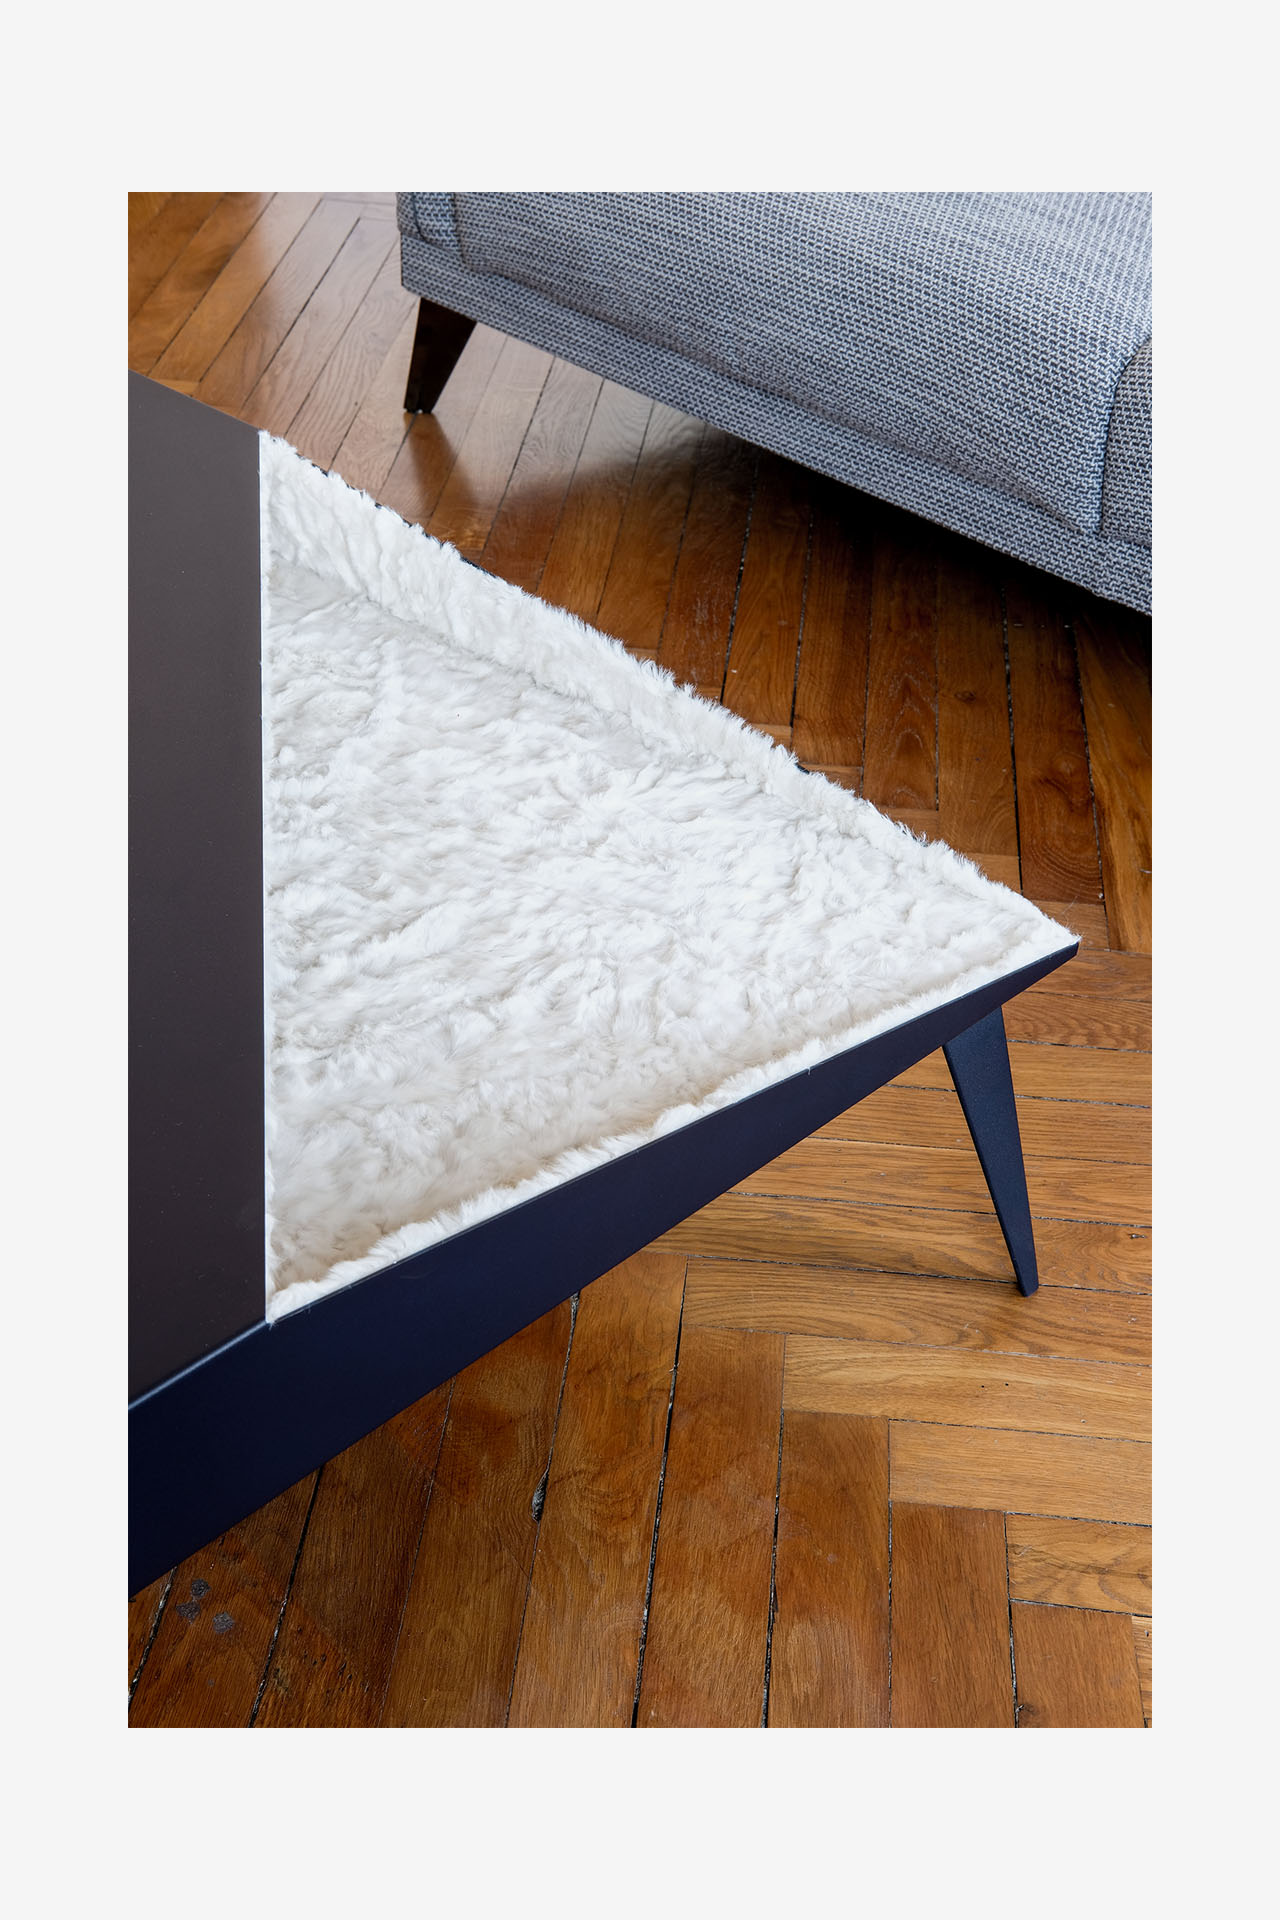 oxidee-table-basse-martiniere-14B